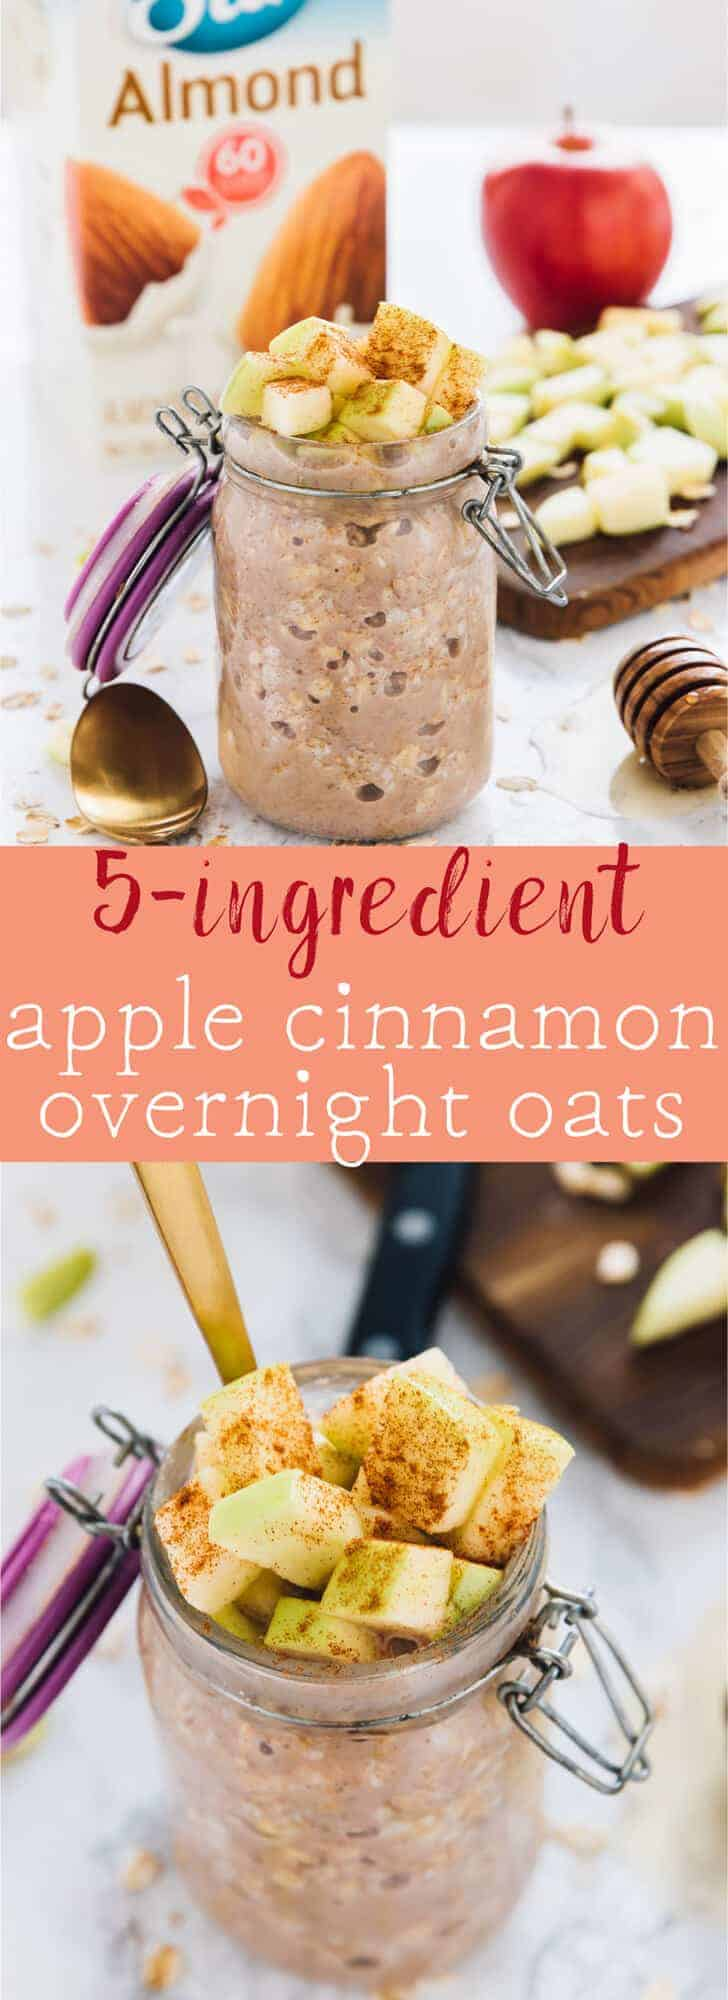 These 5-Ingredient Apple Cinnamon Overnight Oats are great for quick and busy mornings! They take 5 minutes of prep the night before and are so delicious! Vegan and GF! via https://jessicainthekitchen.com